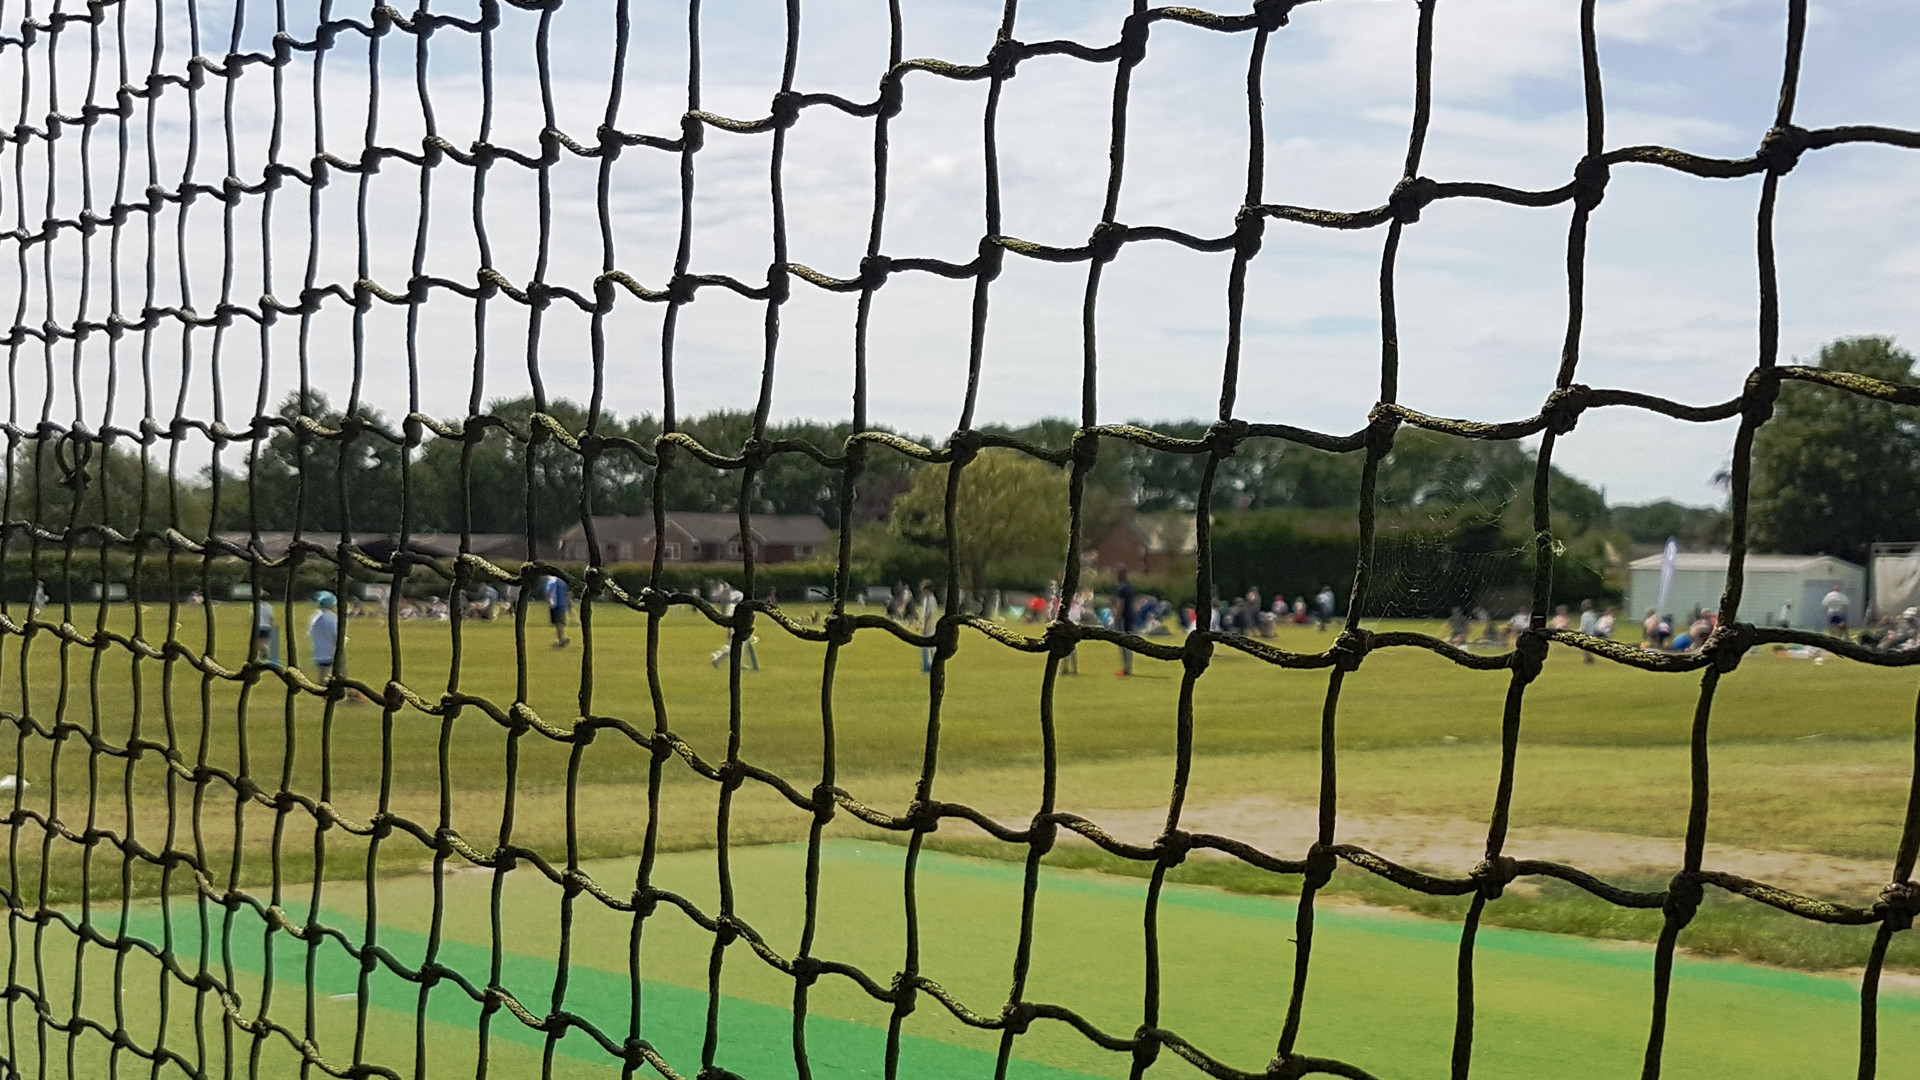 Cricket pitch through net.jpg